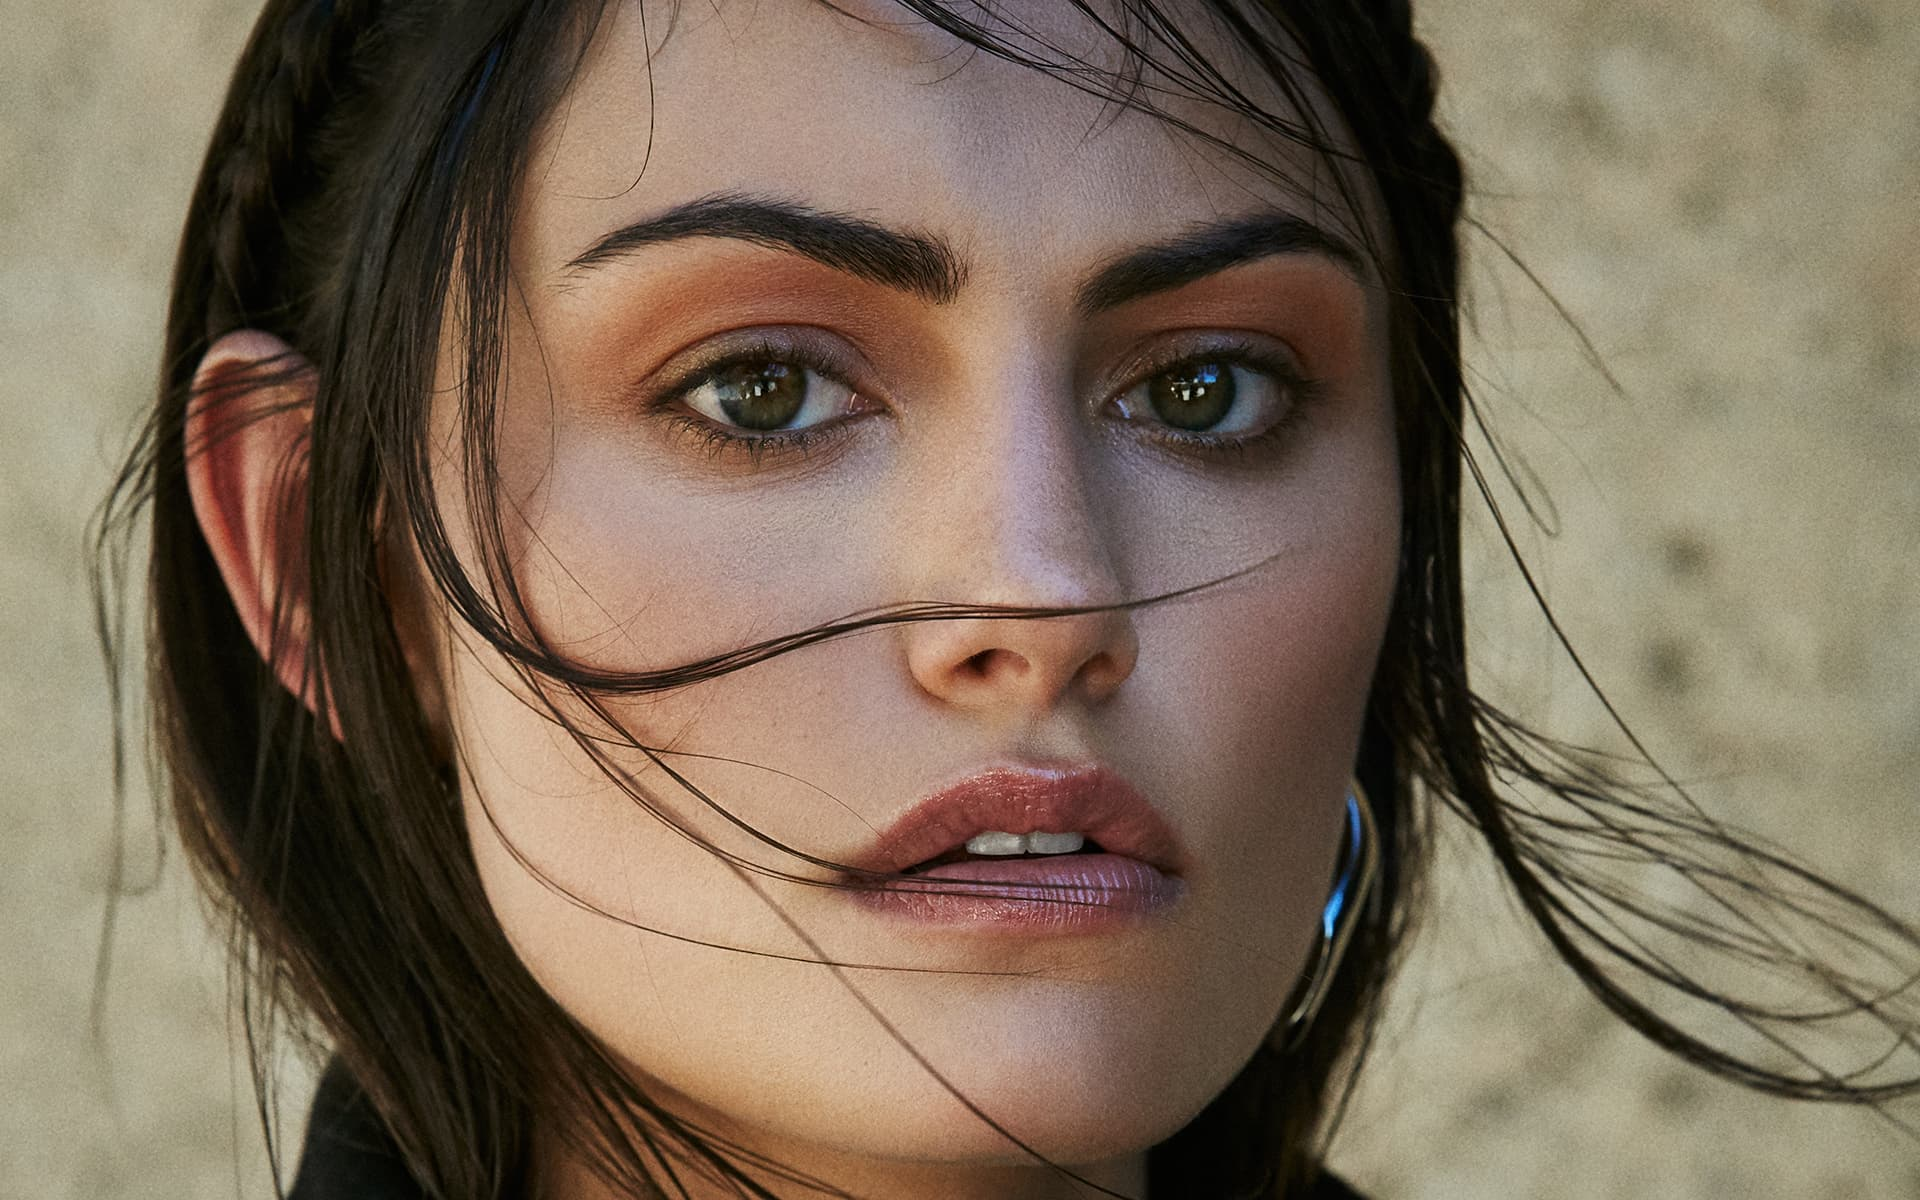 Eyes Phoebe Tonkin Hd Wallpaper Hd Image 2 On Wallpapersqq